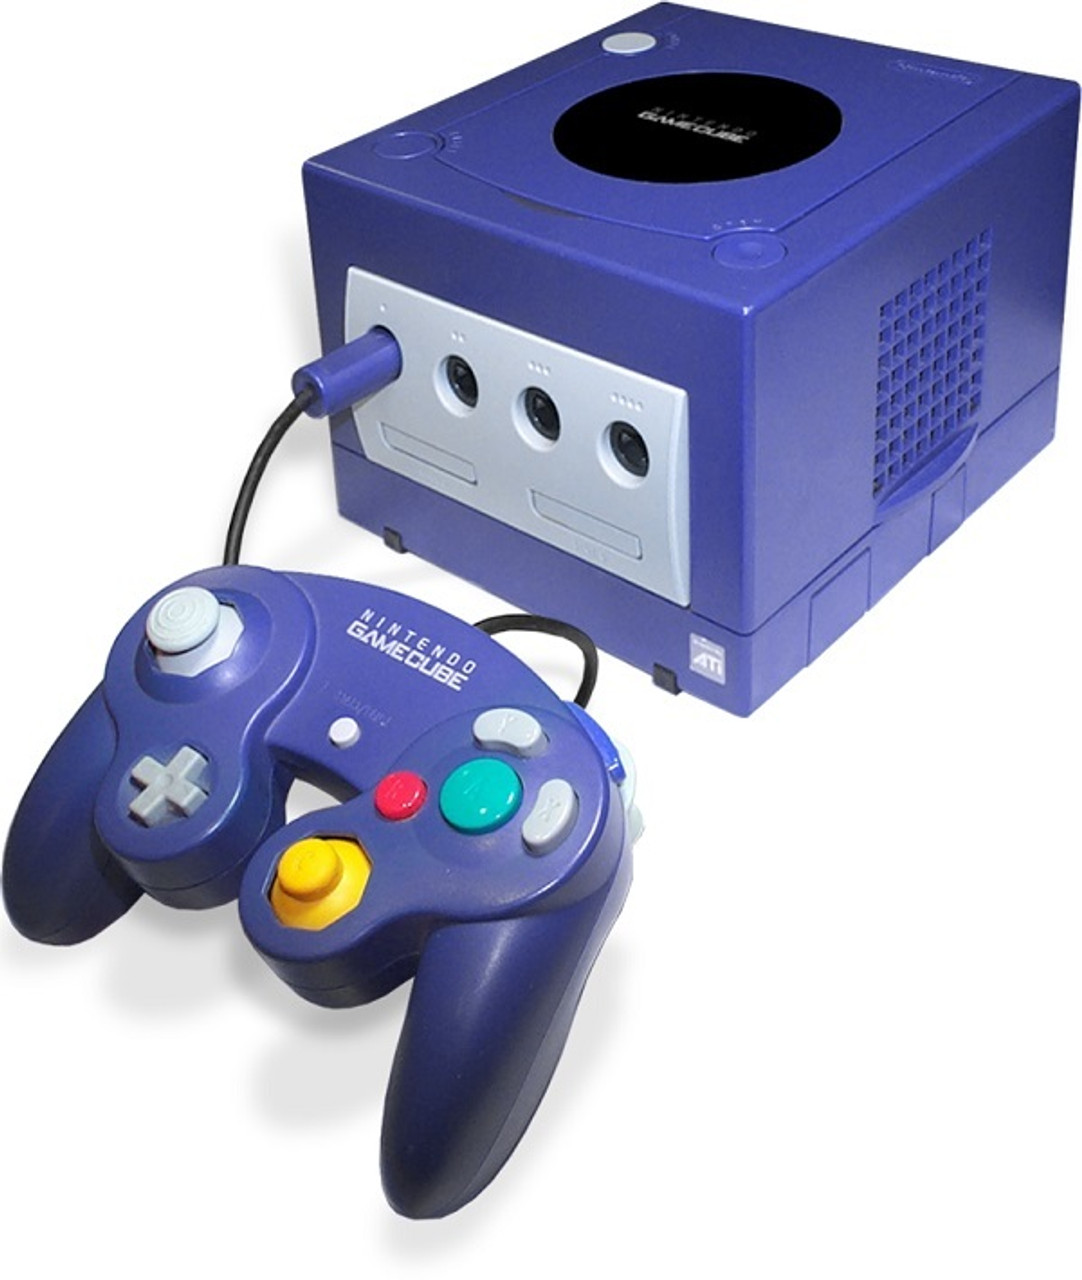 Nintendo Gamecube Games And Accessories